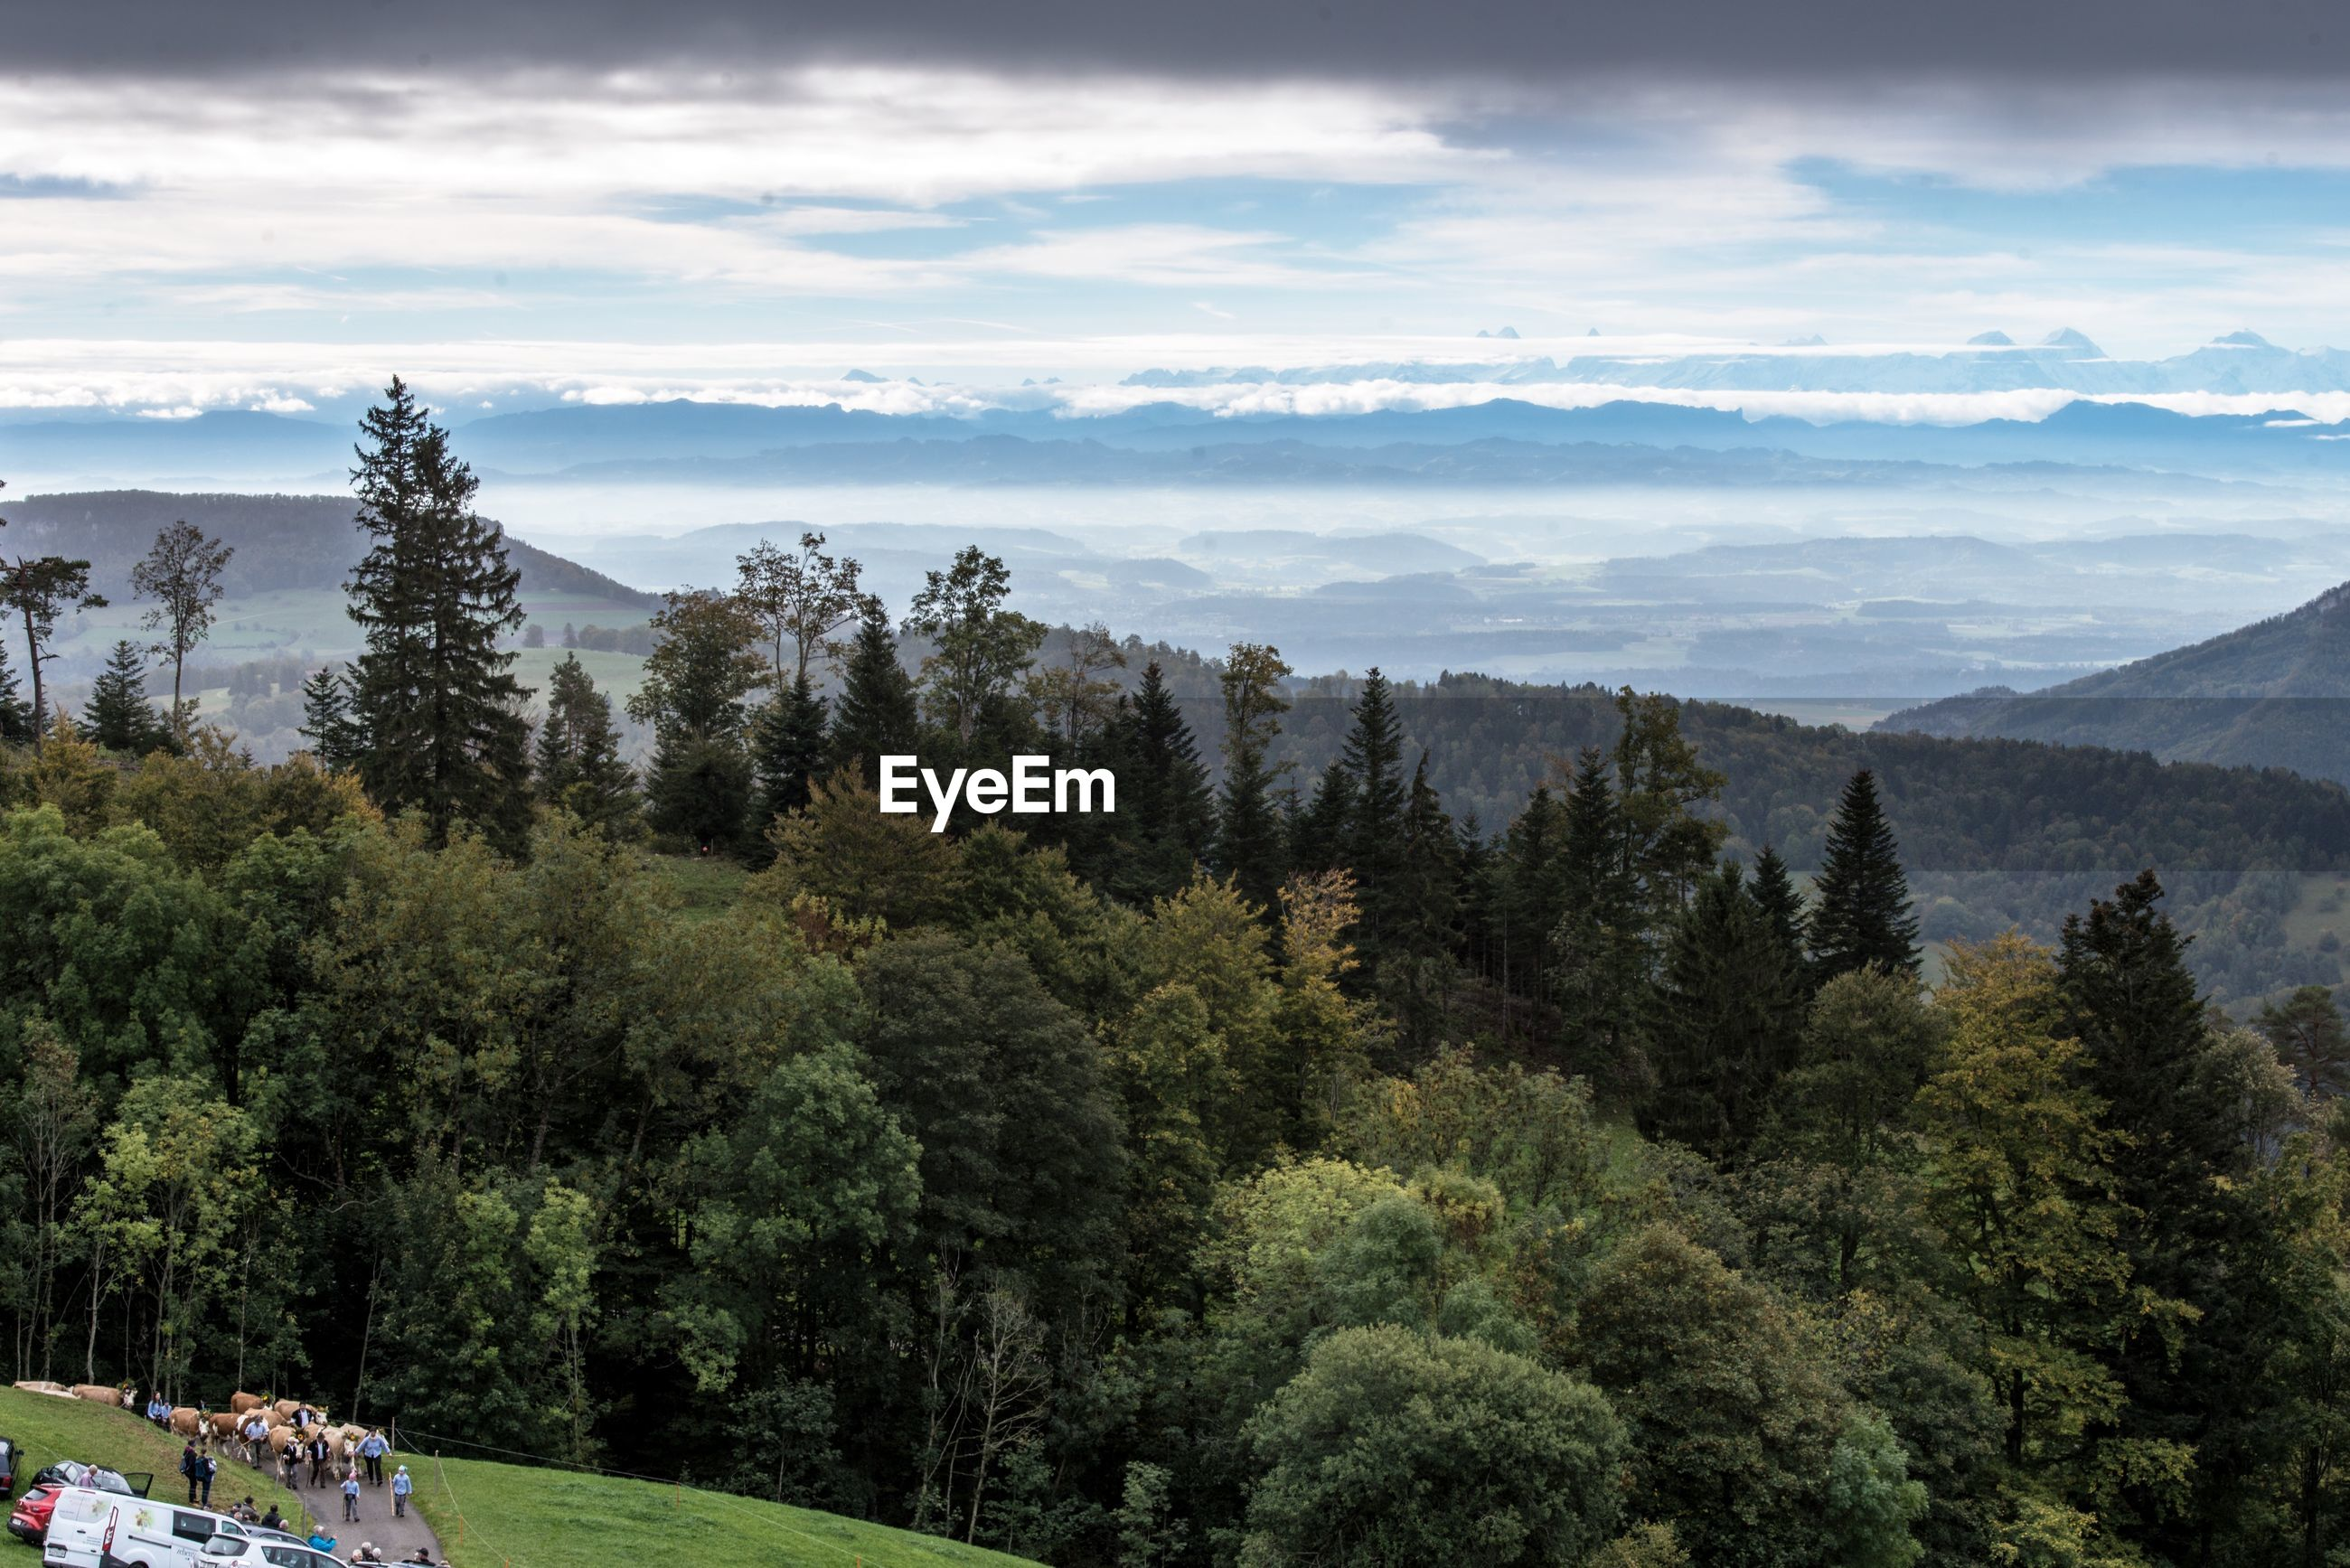 SCENIC VIEW OF TREES ON MOUNTAIN AGAINST SKY